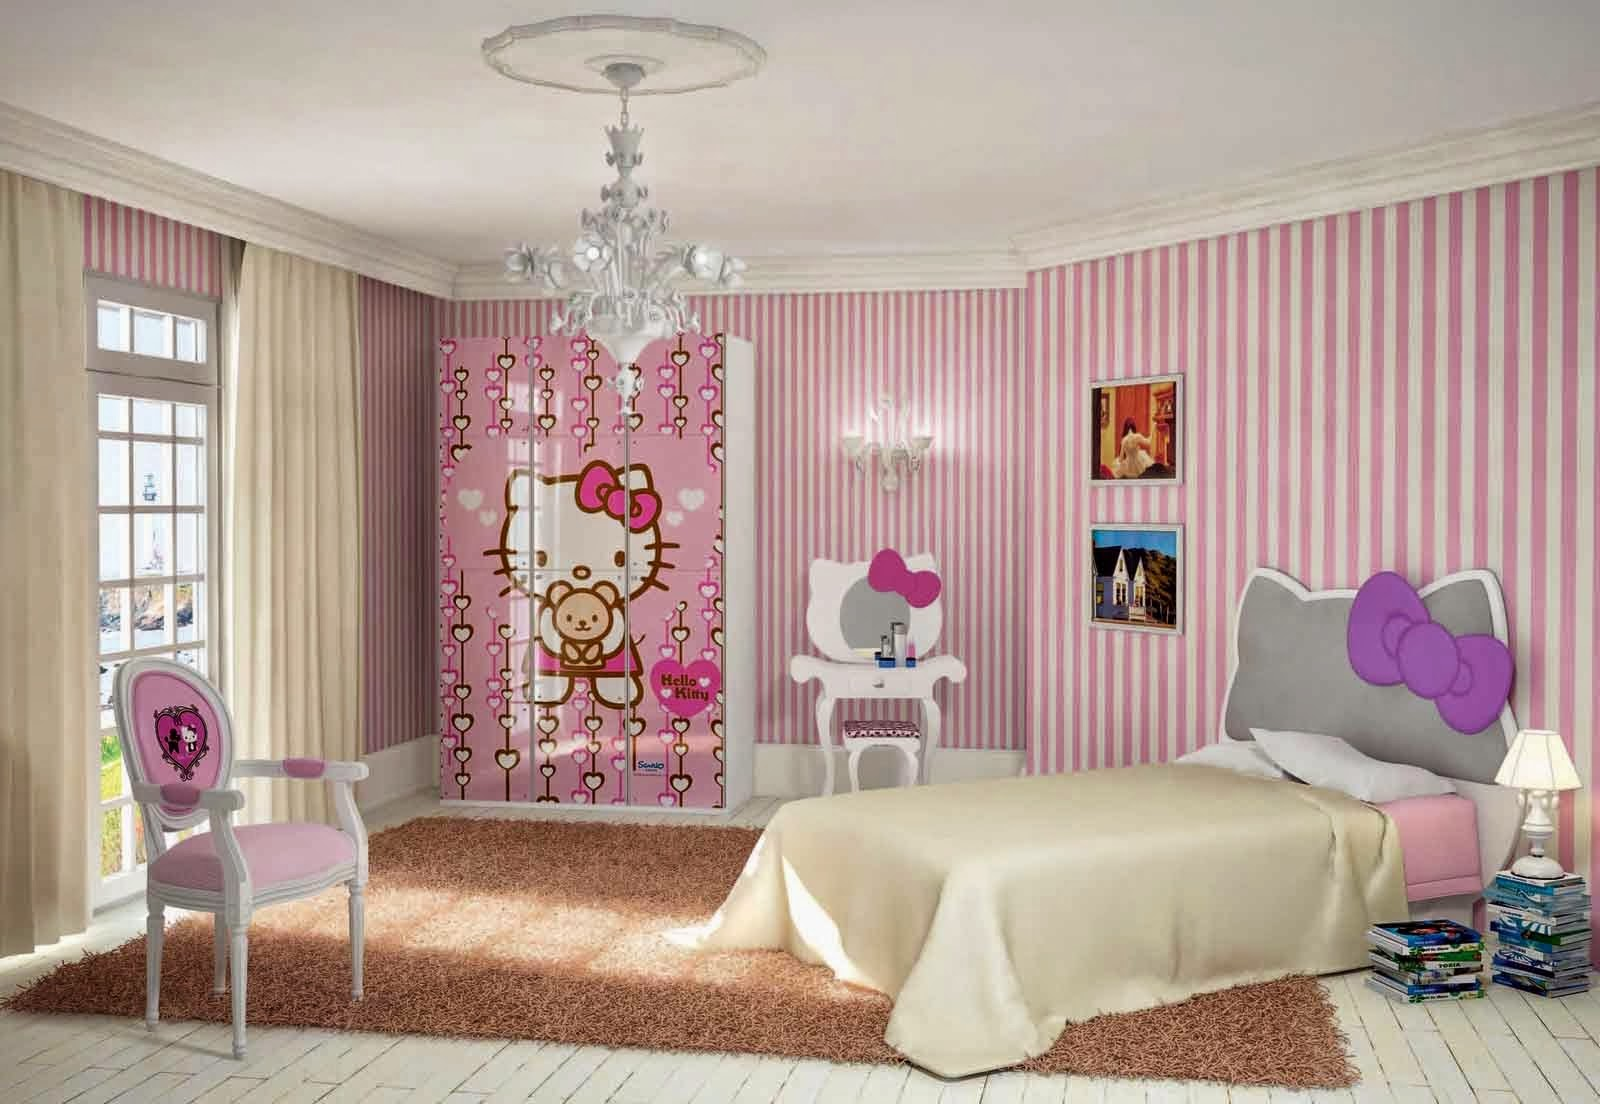 Bedroom Interior Design Hello Kitty 2015 Home Inspirations